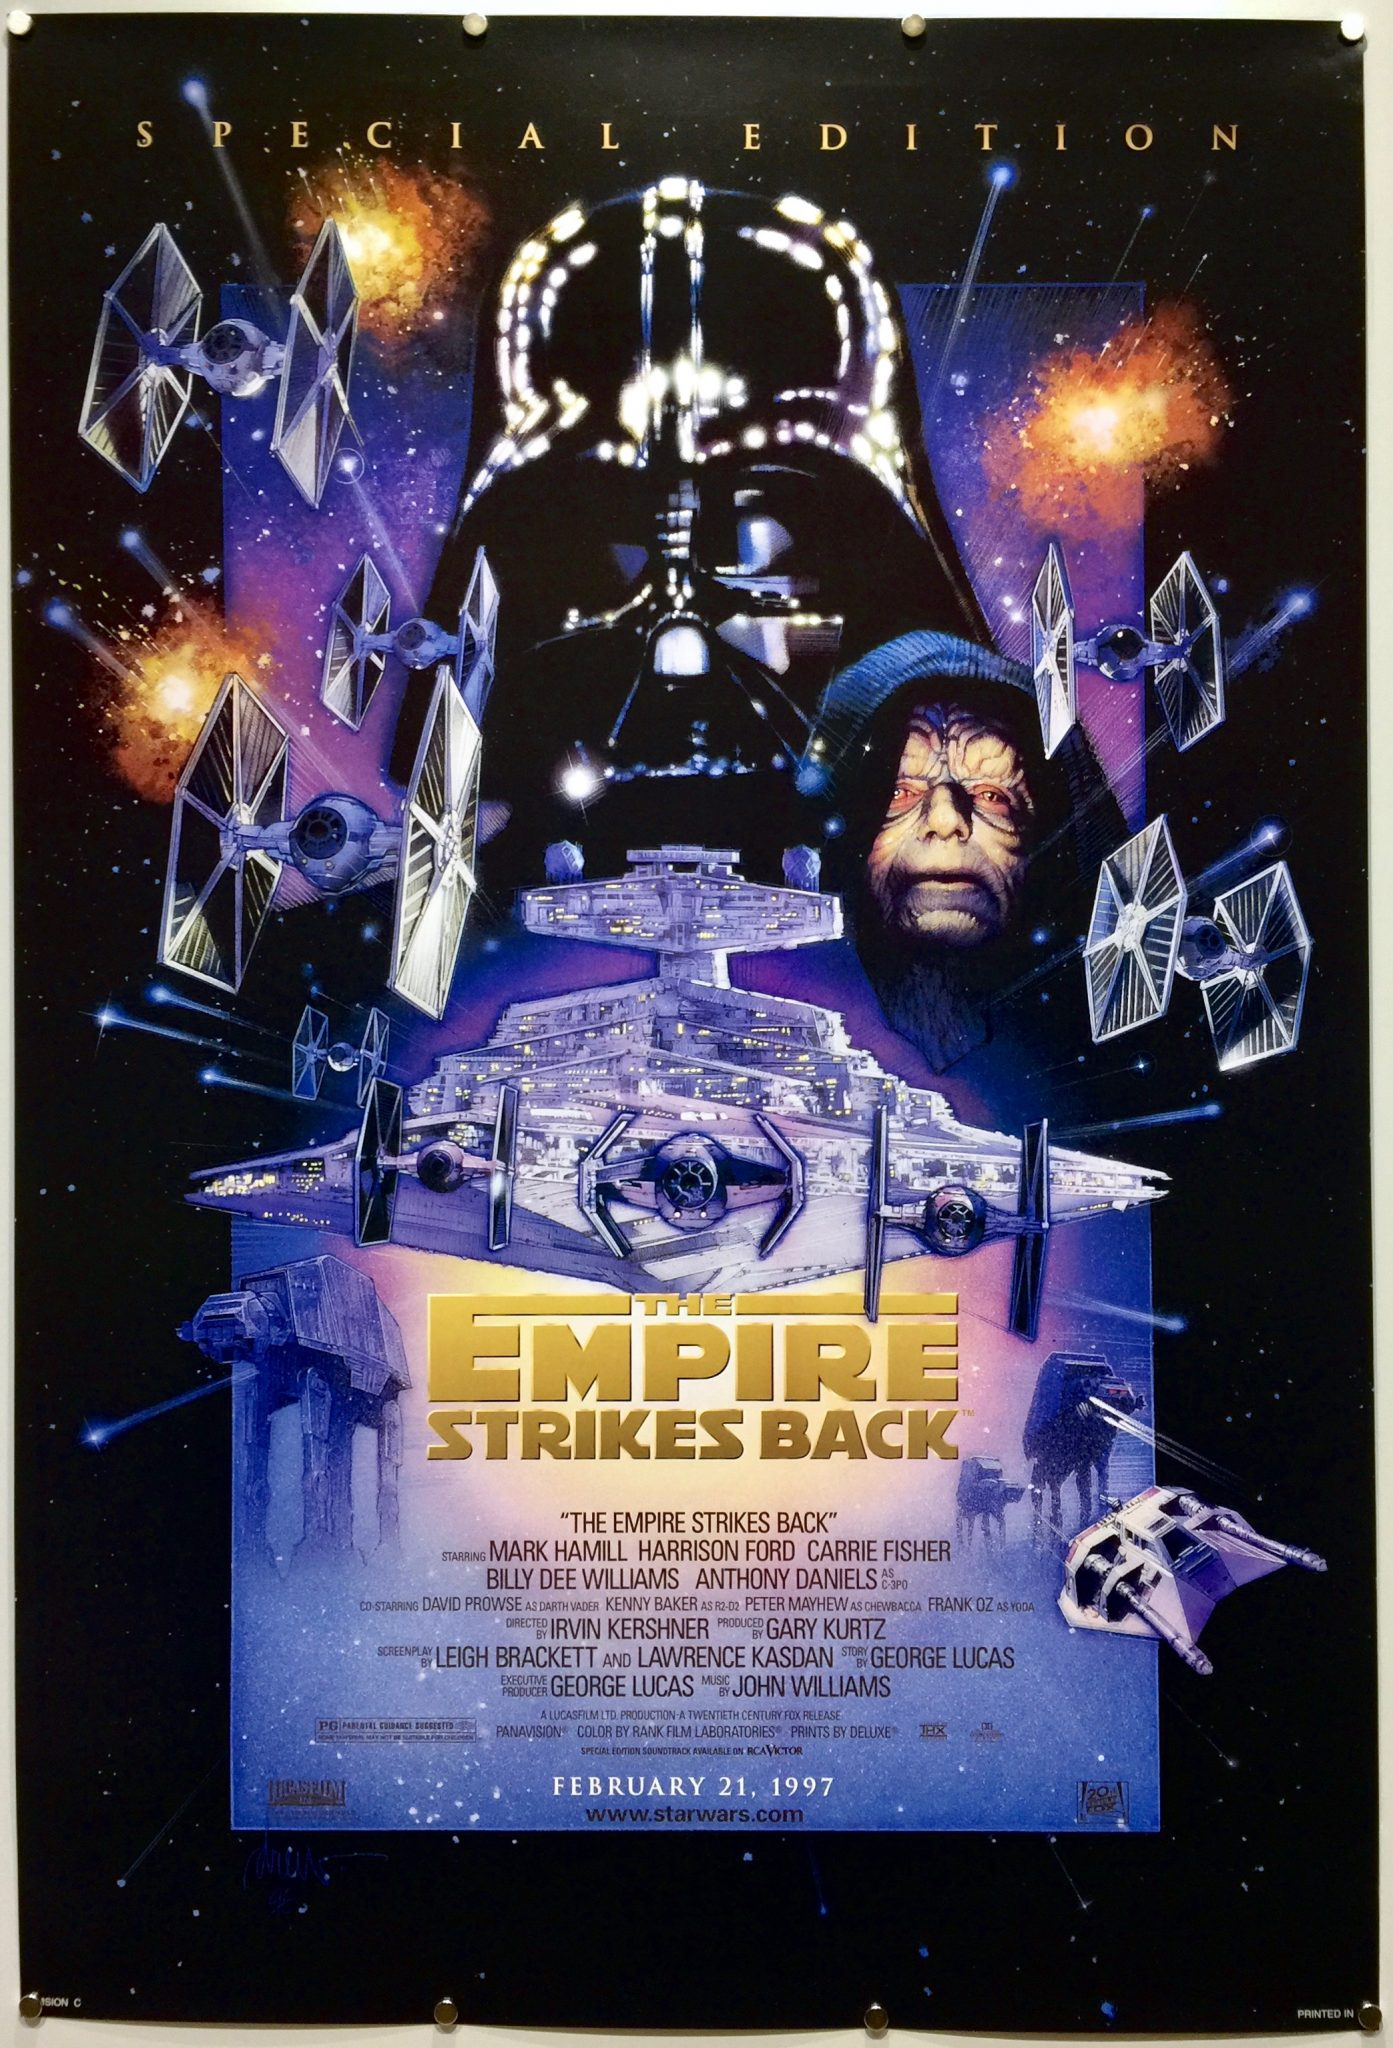 The Empire Strikes Back 1980 R1997 Us One Sheet The Poster Collector